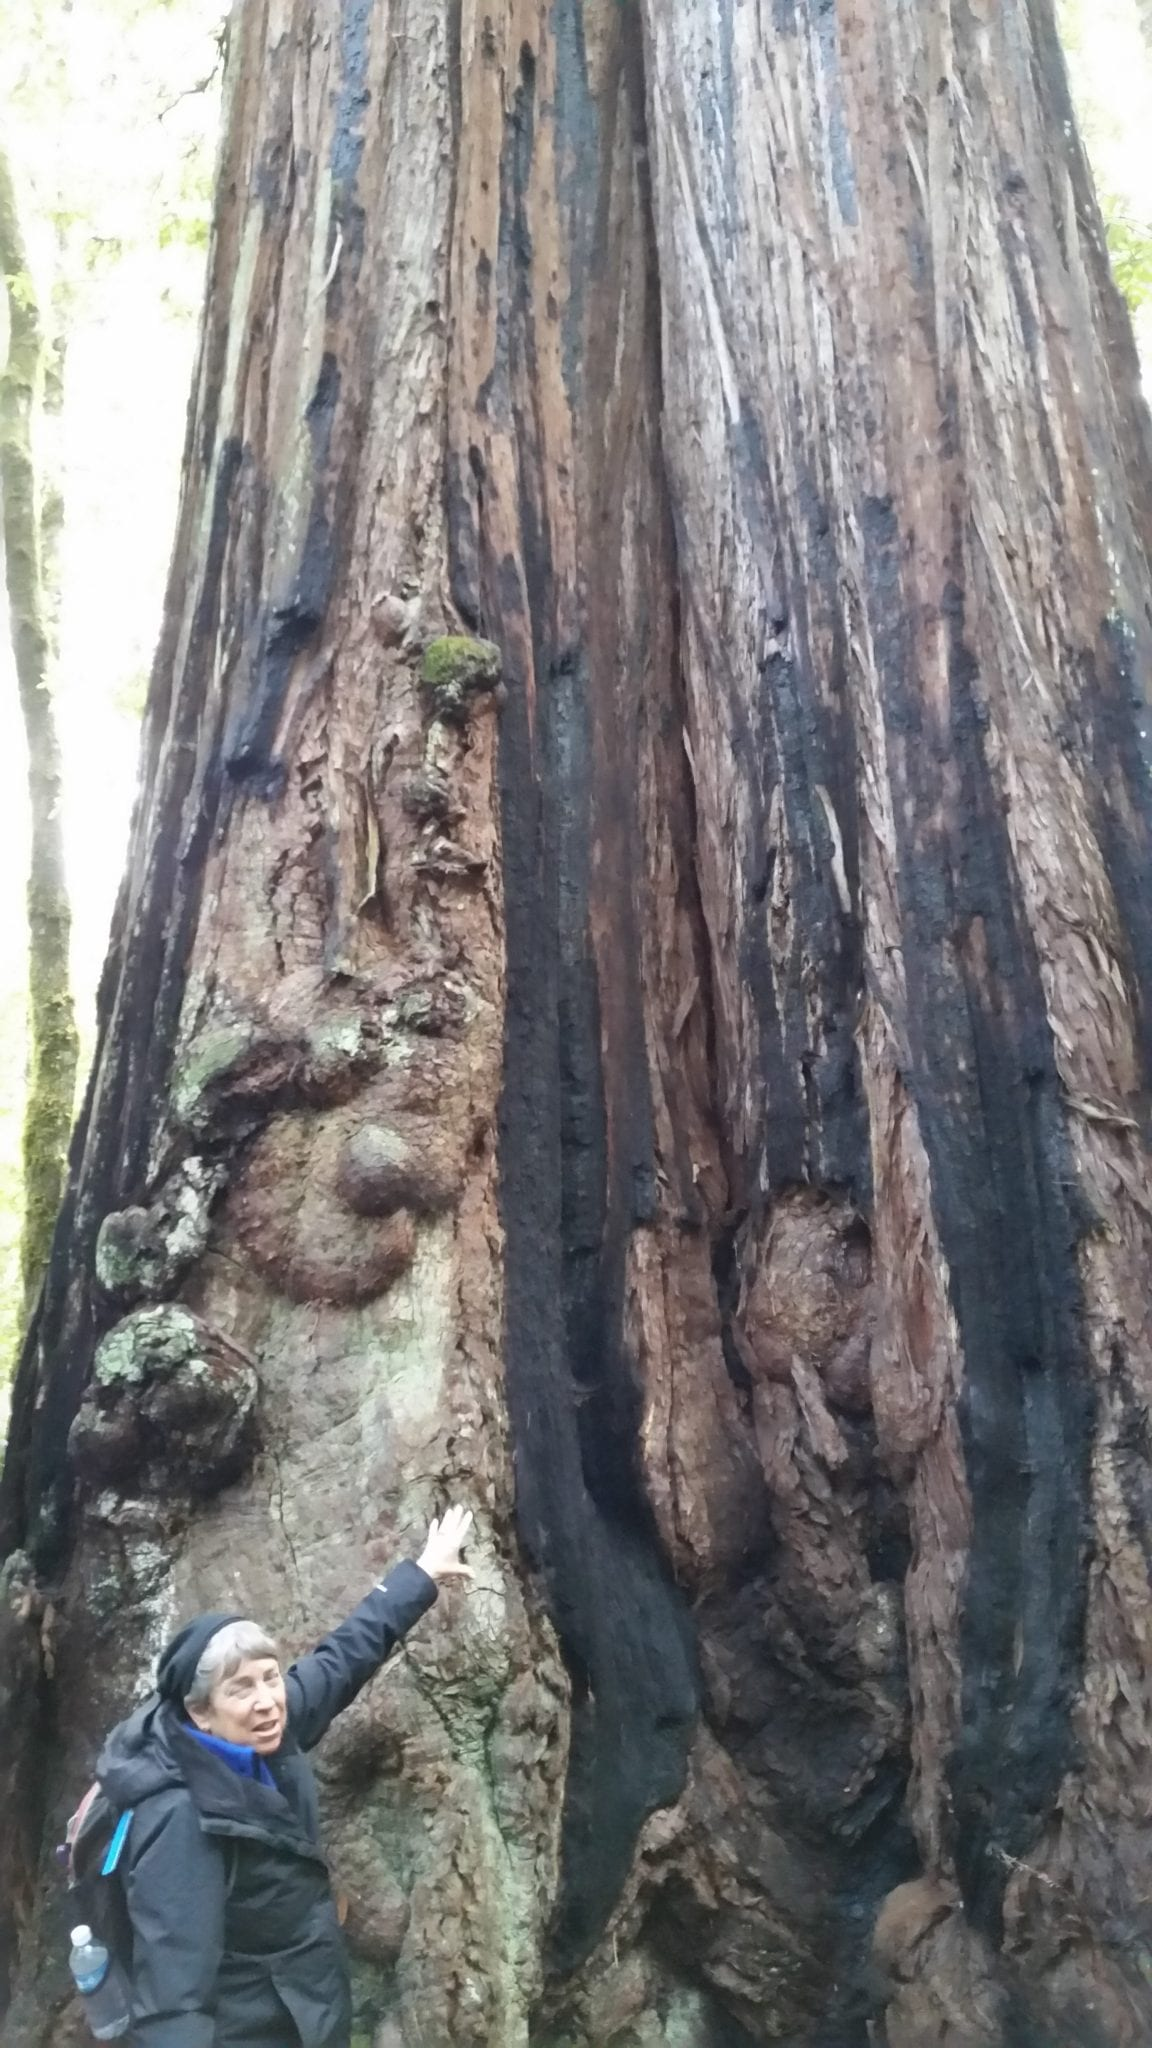 Linda and big redwood tree